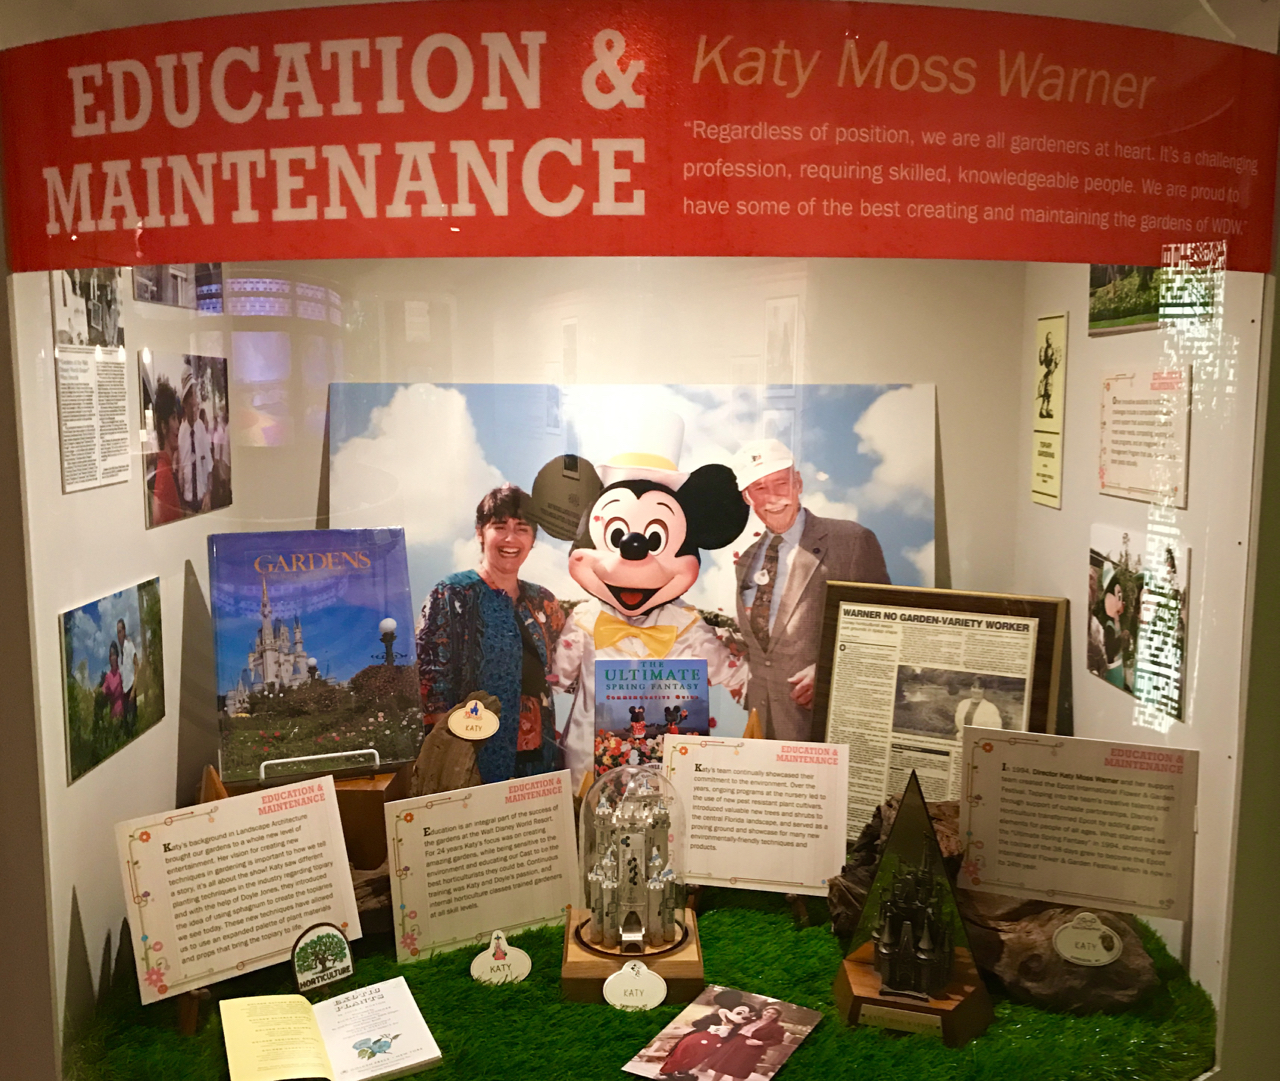 Katy Moss Warner is one passionate leader I got to know. She was a key figure in creating the Epcot Flower & Garden Festival.